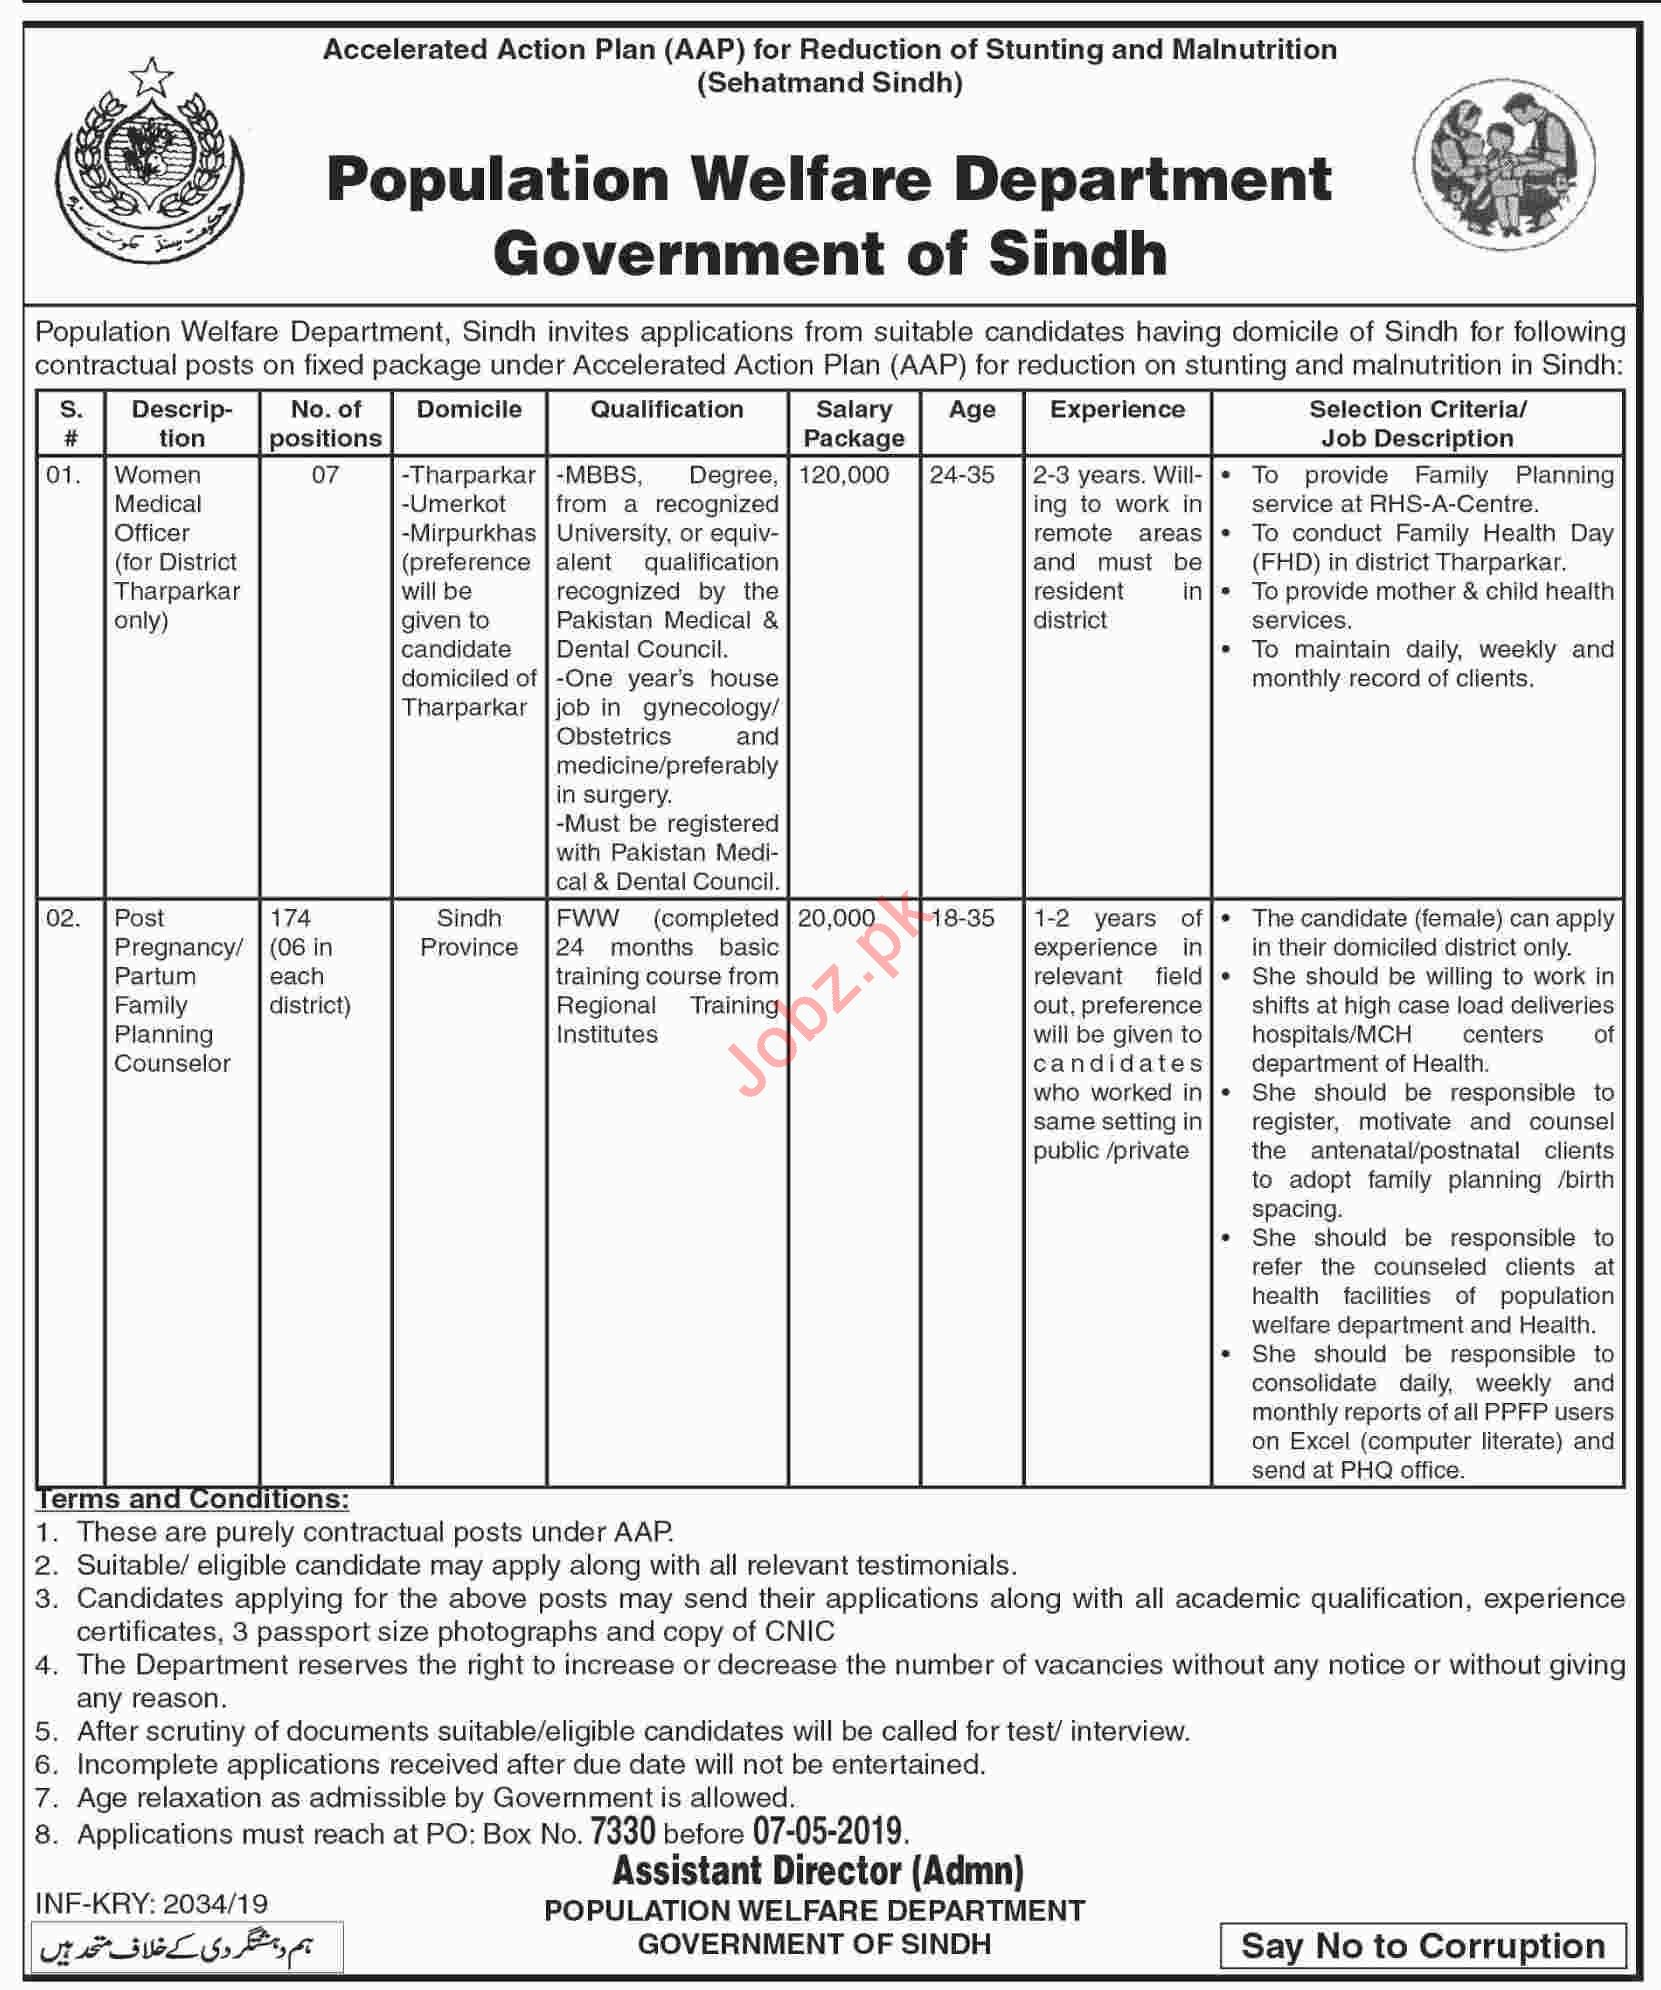 Medical Officer Jobs in Population Welfare Department